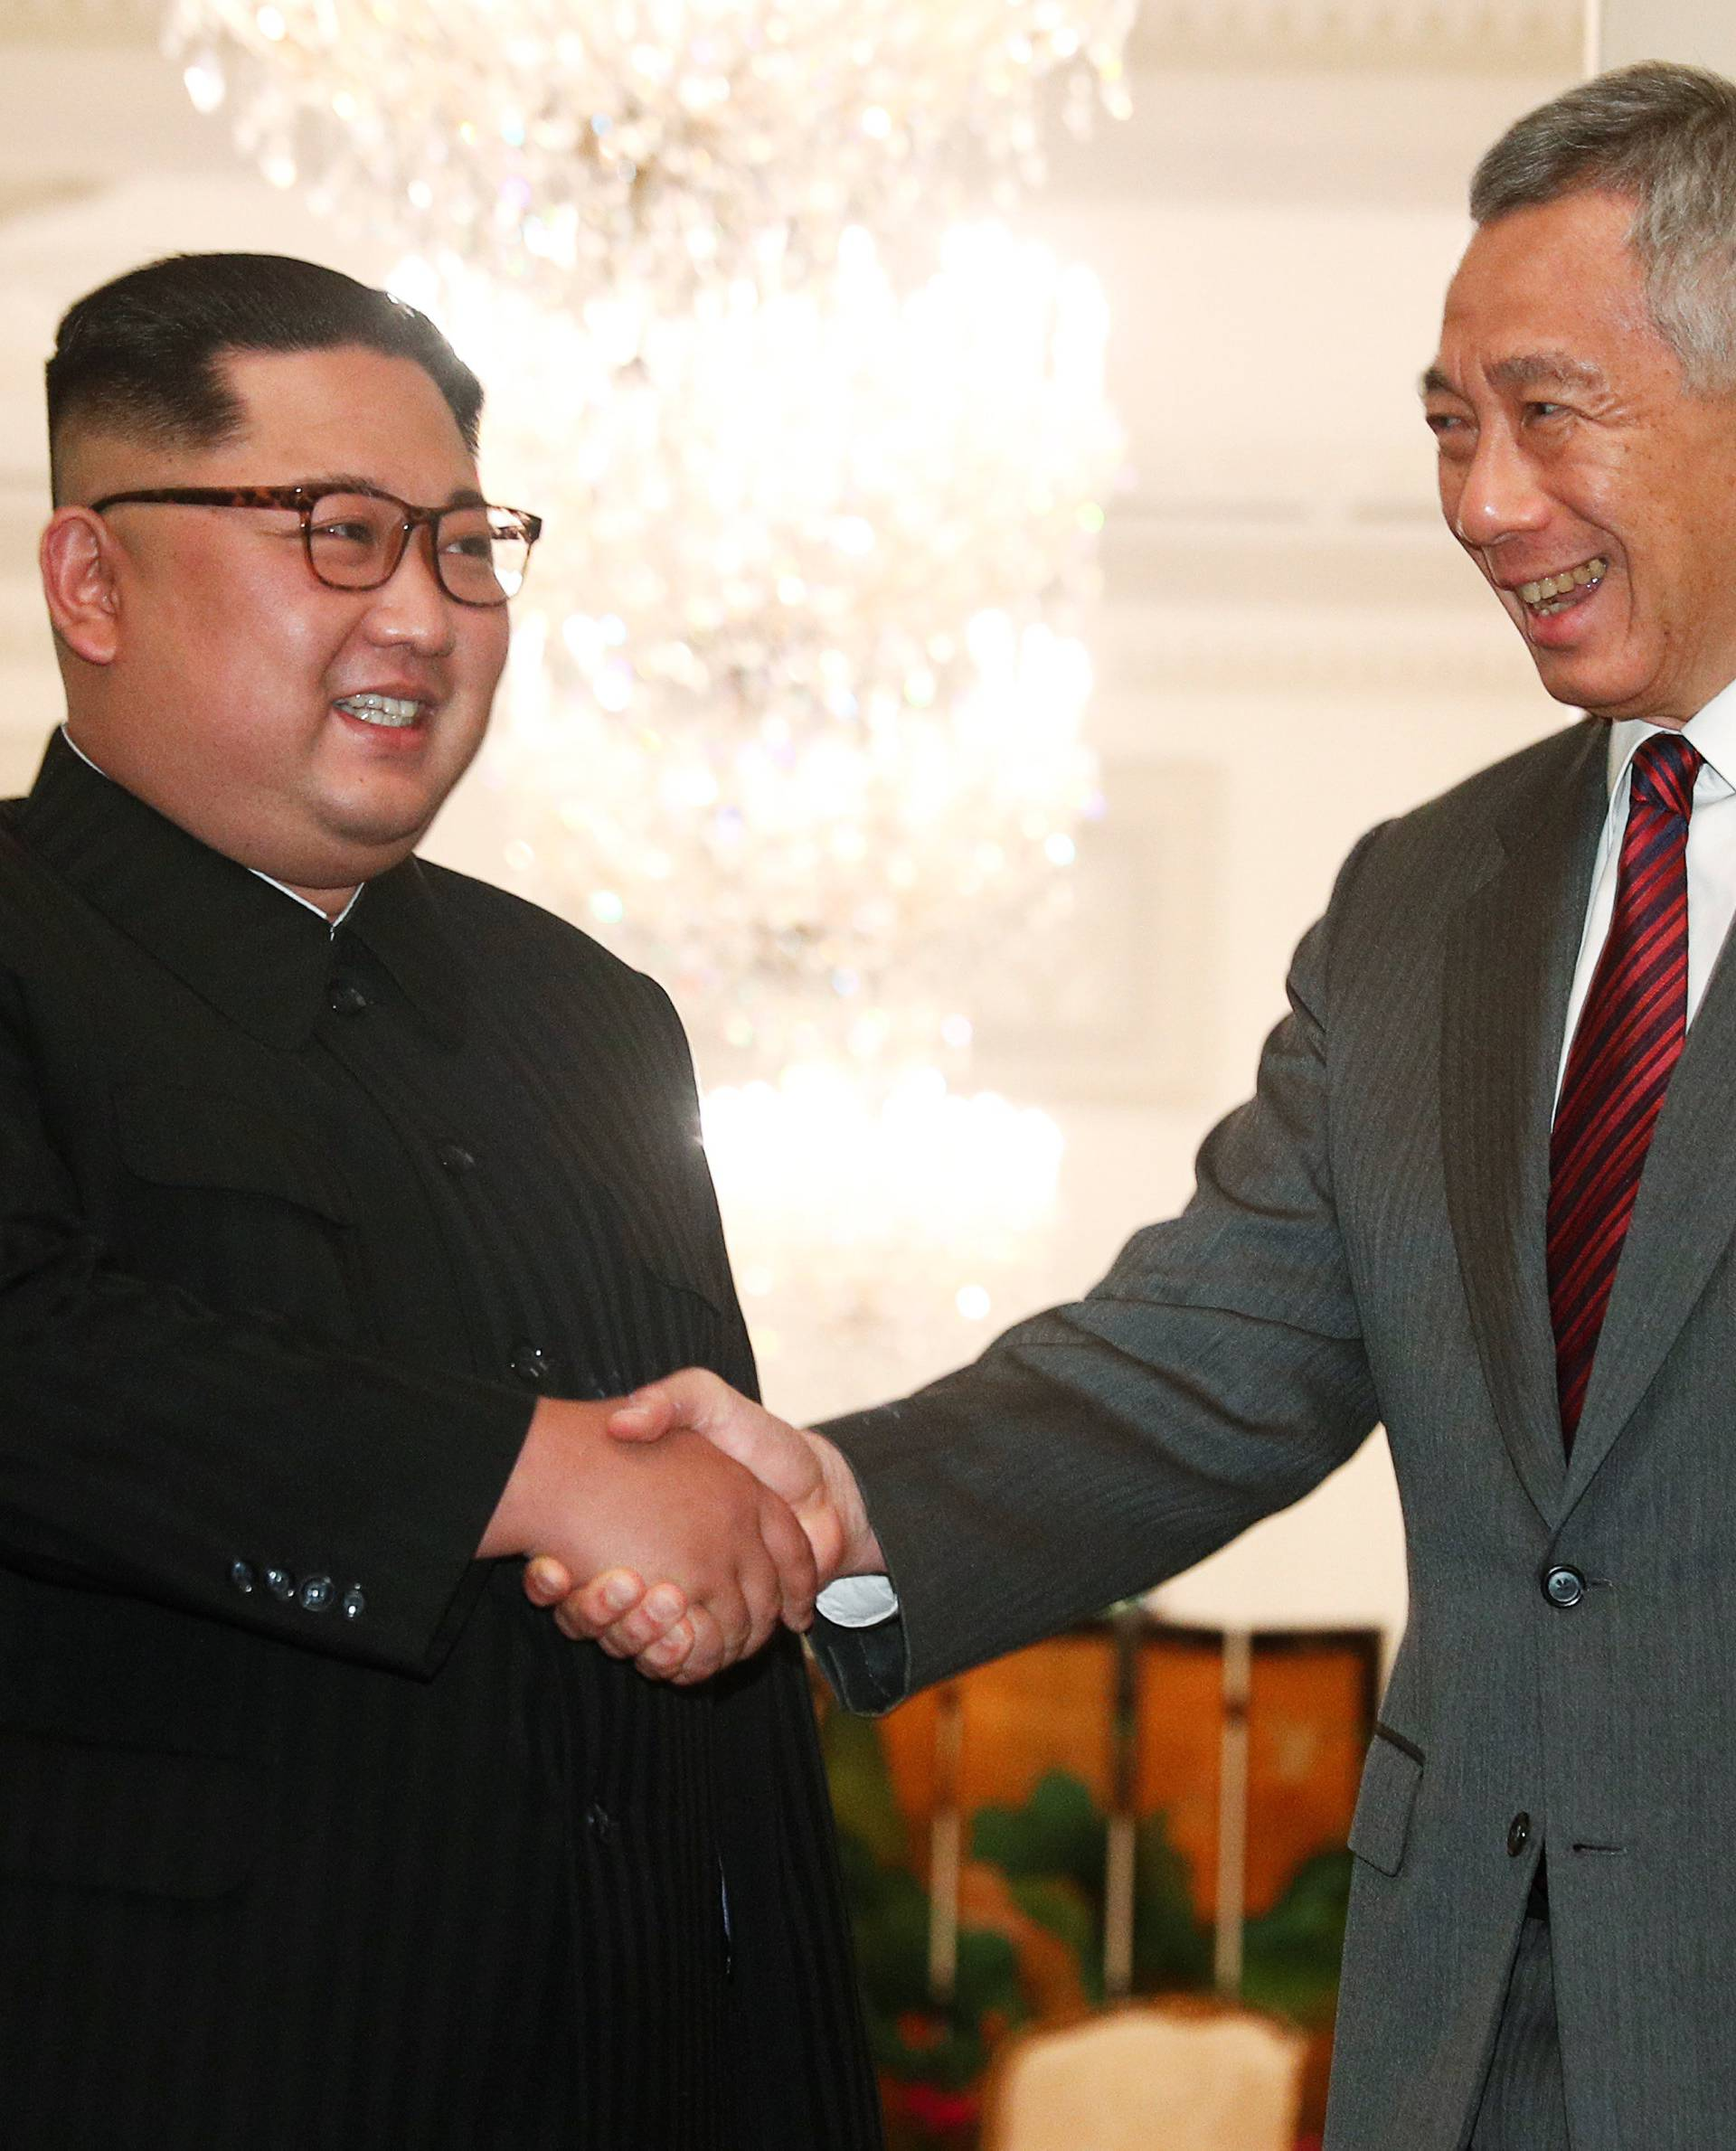 North Korea's leader Kim Jong Un shakes hands with Singapore's Prime Minister Lee Hsien Loong at the Istana in Singapore